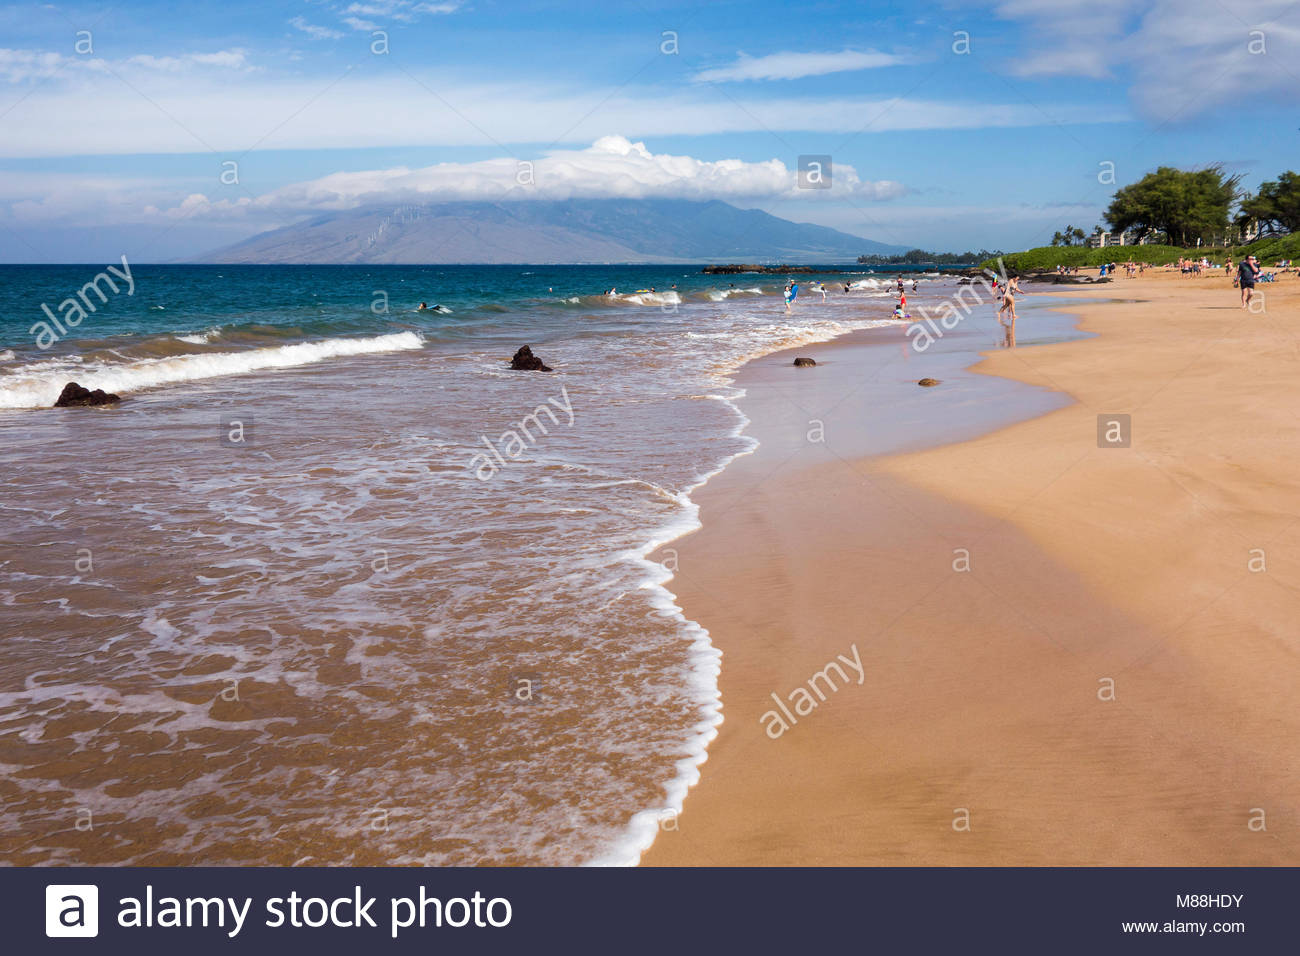 Gentle surf on Kamaole Beach Park 3 in Kihei on the island of Maui in the state of Hawaii USA - Stock Image